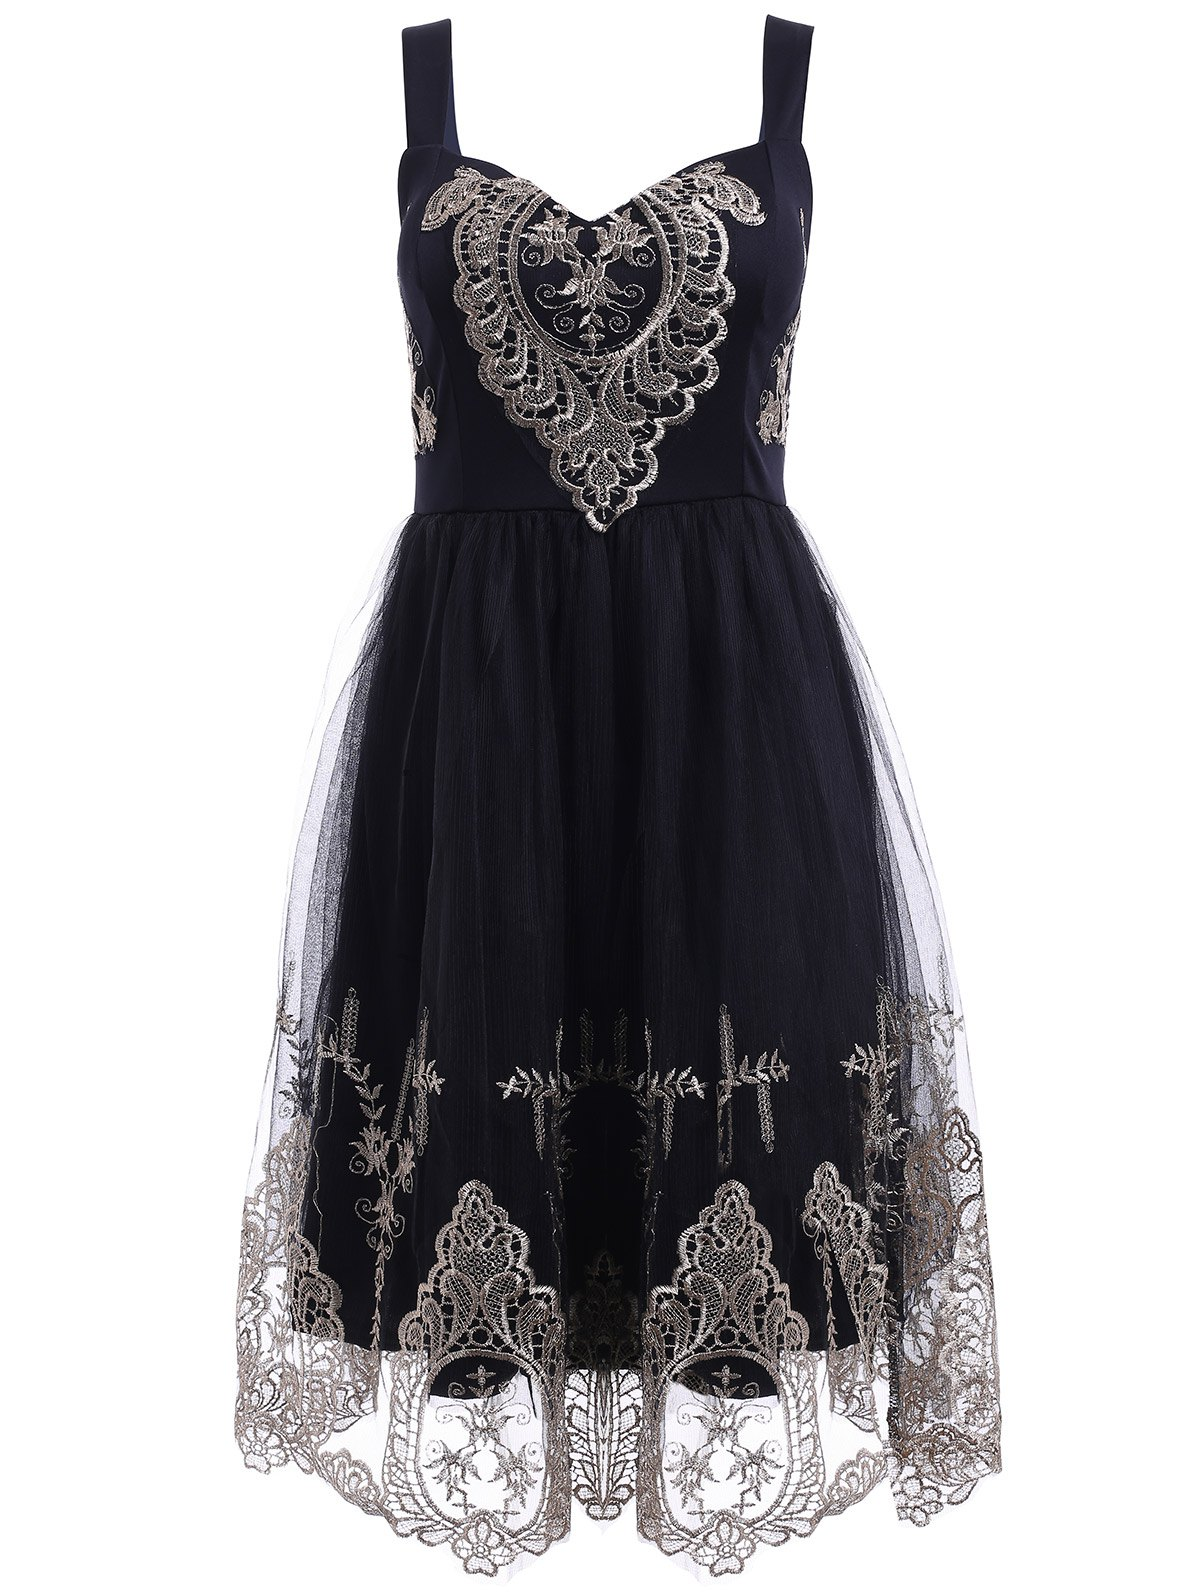 Elegant Straps Golden Lace Floral Embellished Dress For Women 184984004